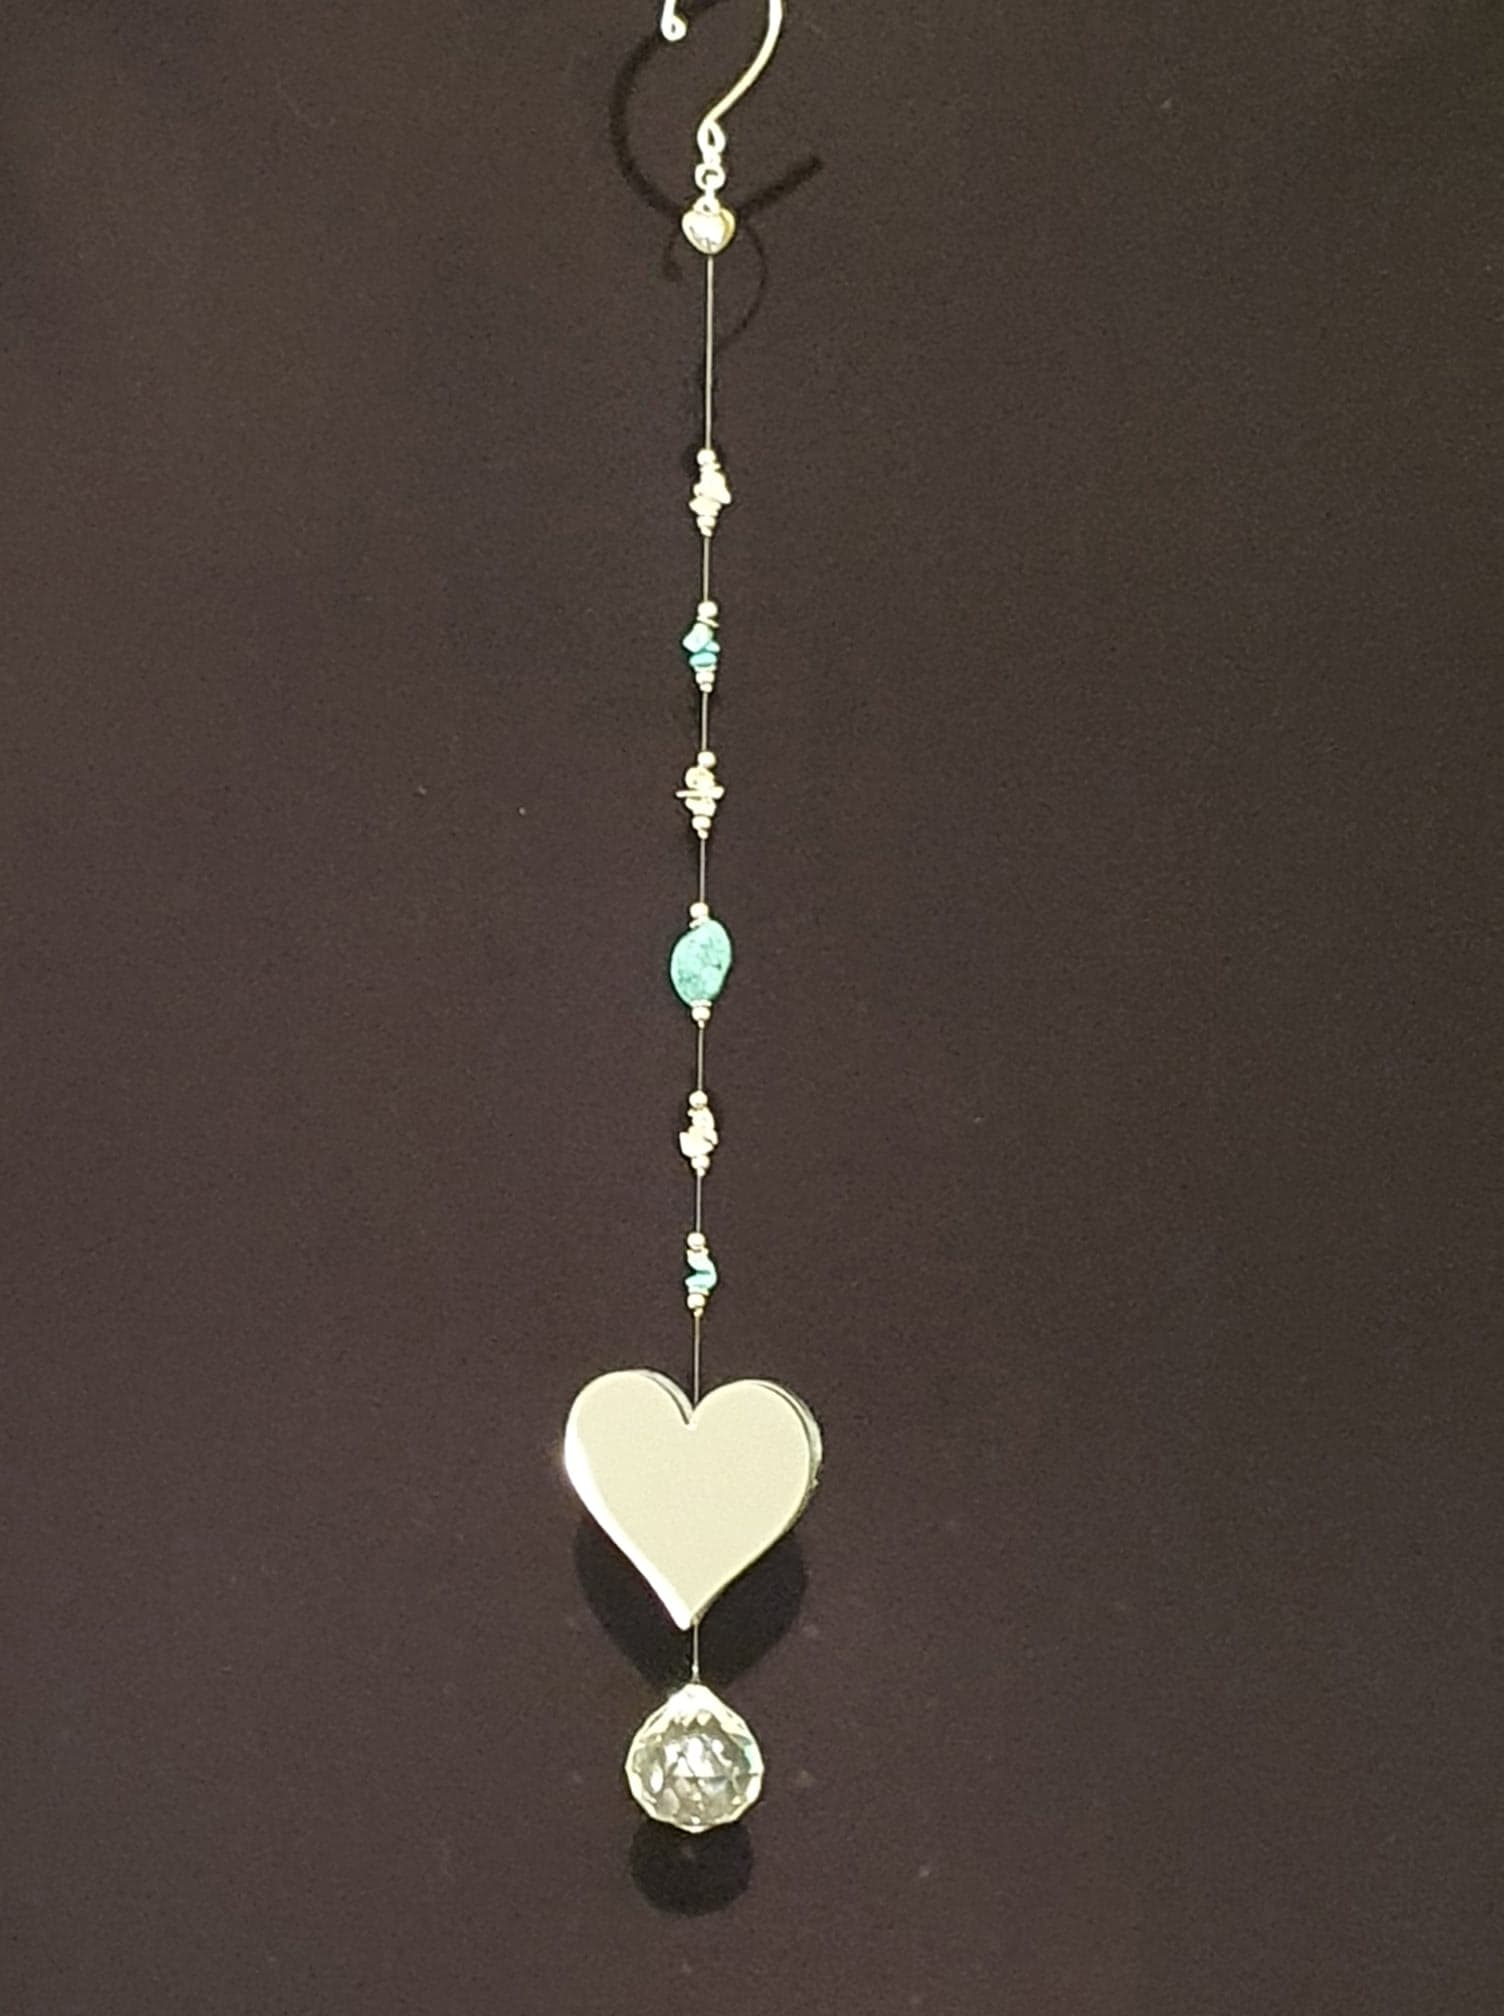 Heart Mirror with Semi-precious Turquoise and Clear Quartz crystals single drop suncatcher